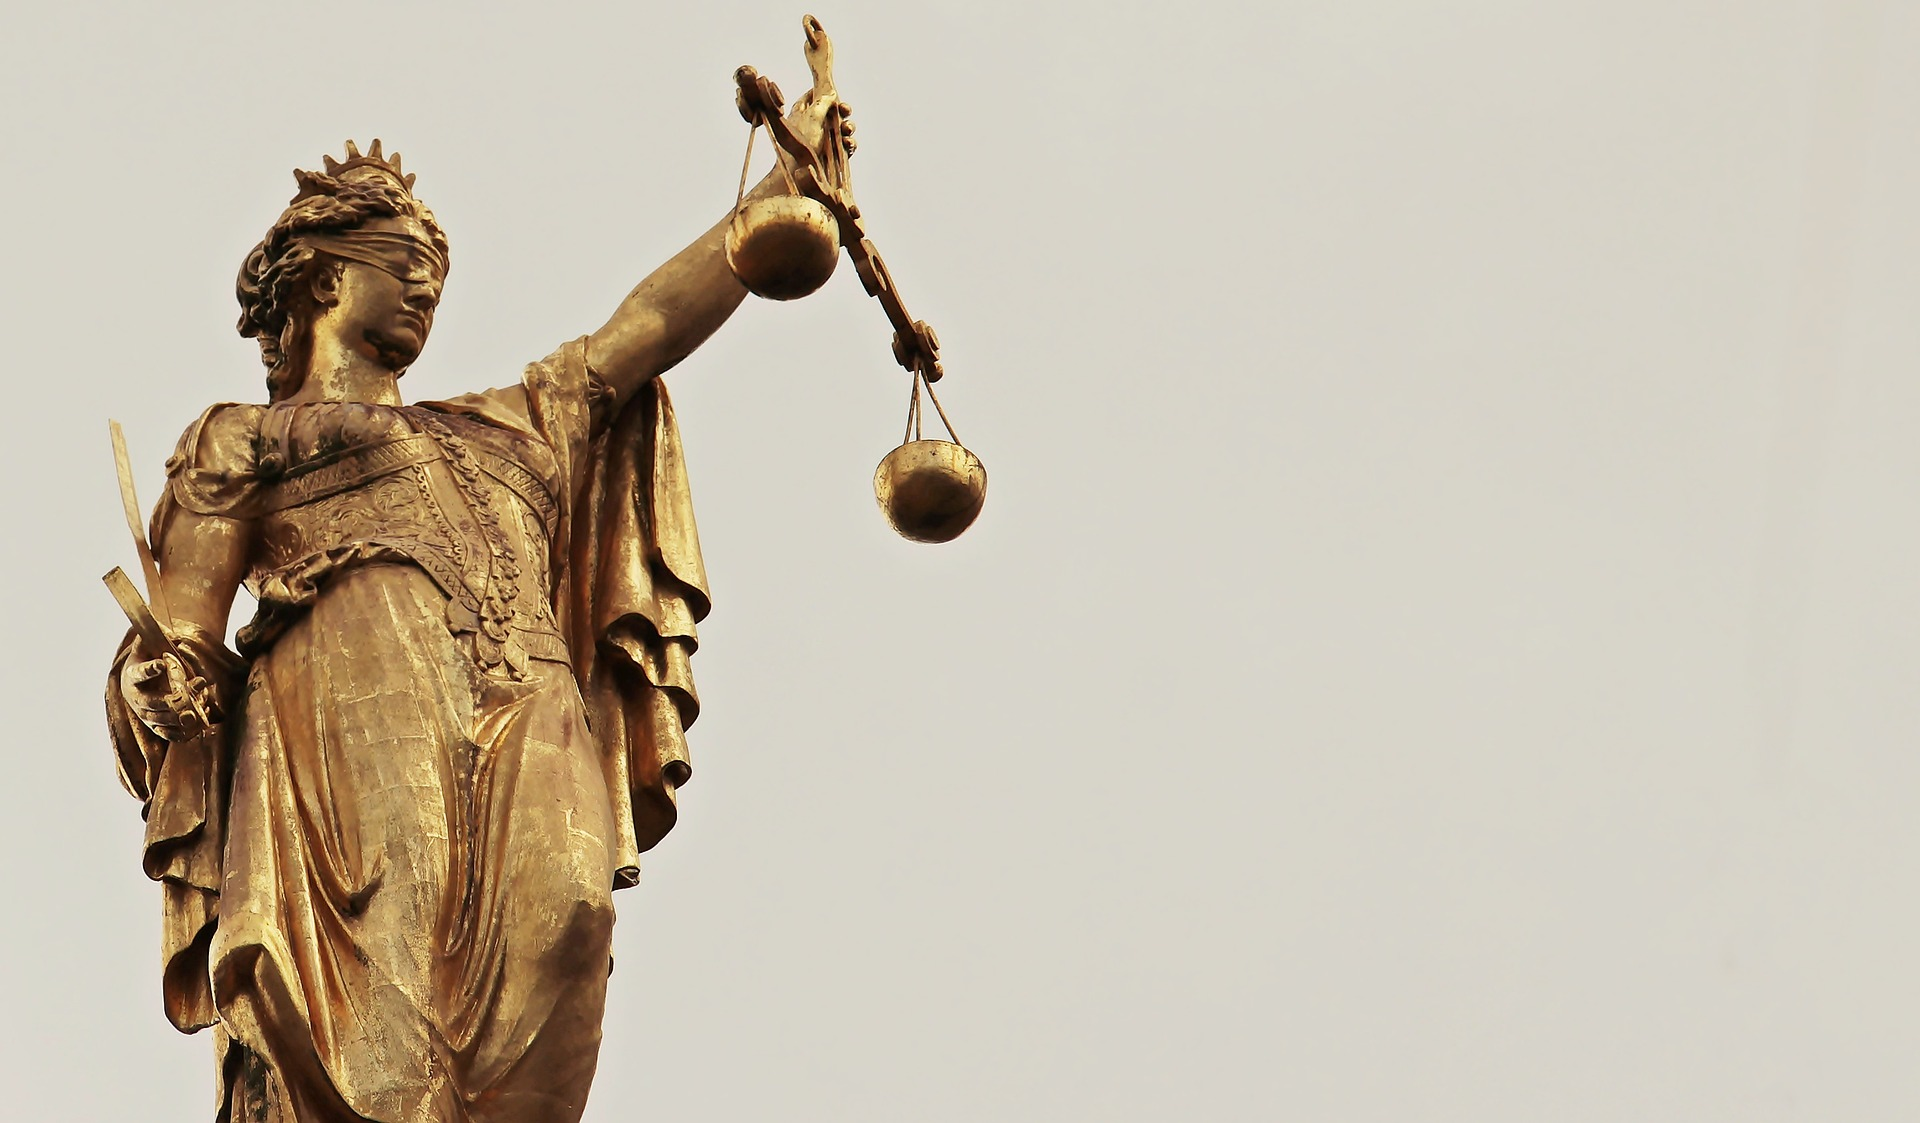 Lady justice holding a scale.